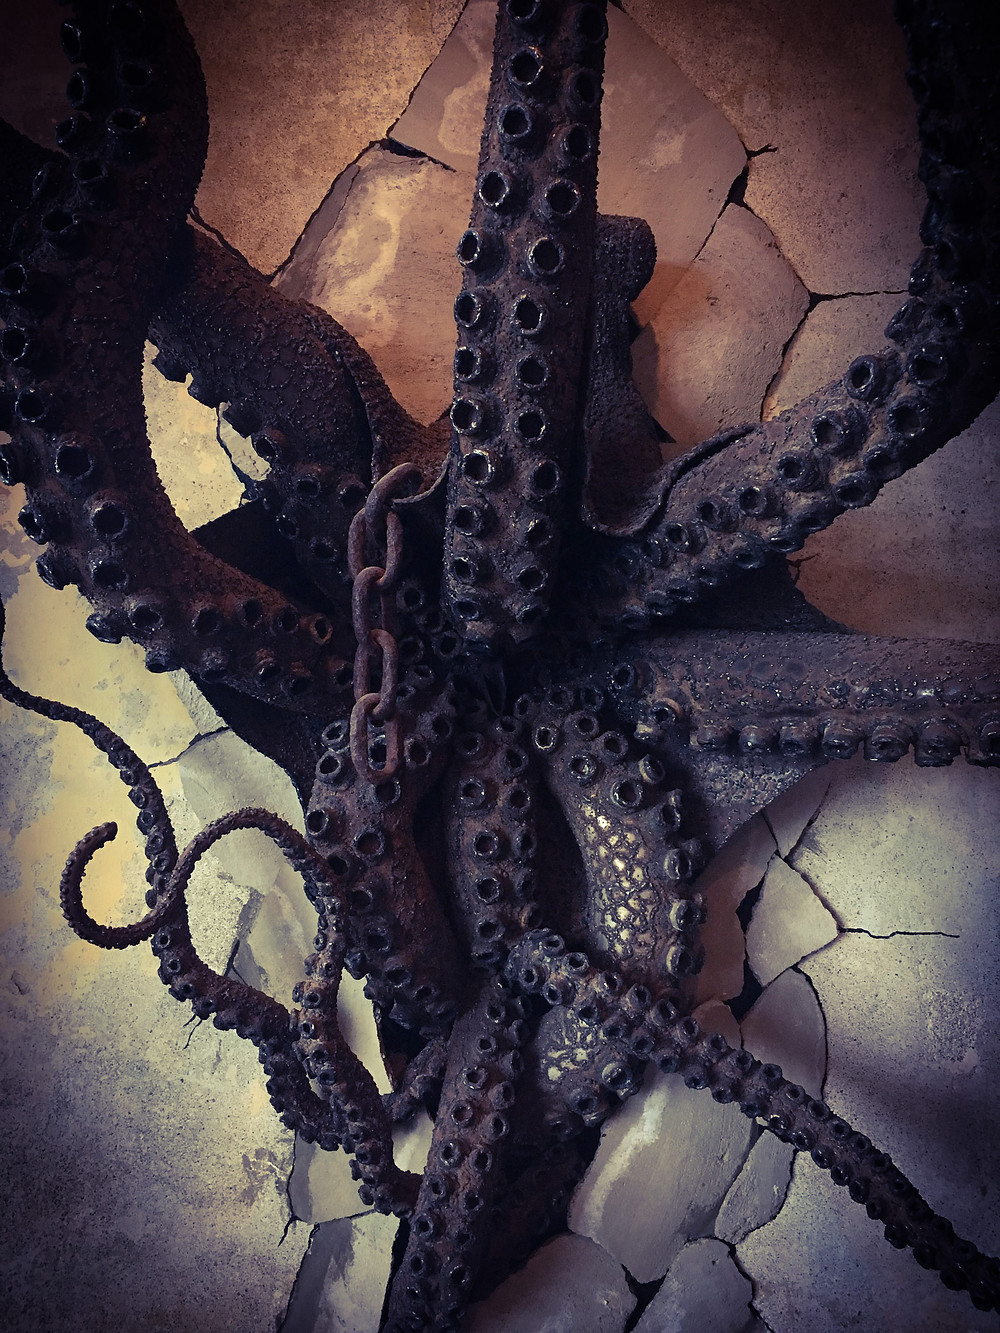 Sculpture, octopus, art, exmoor